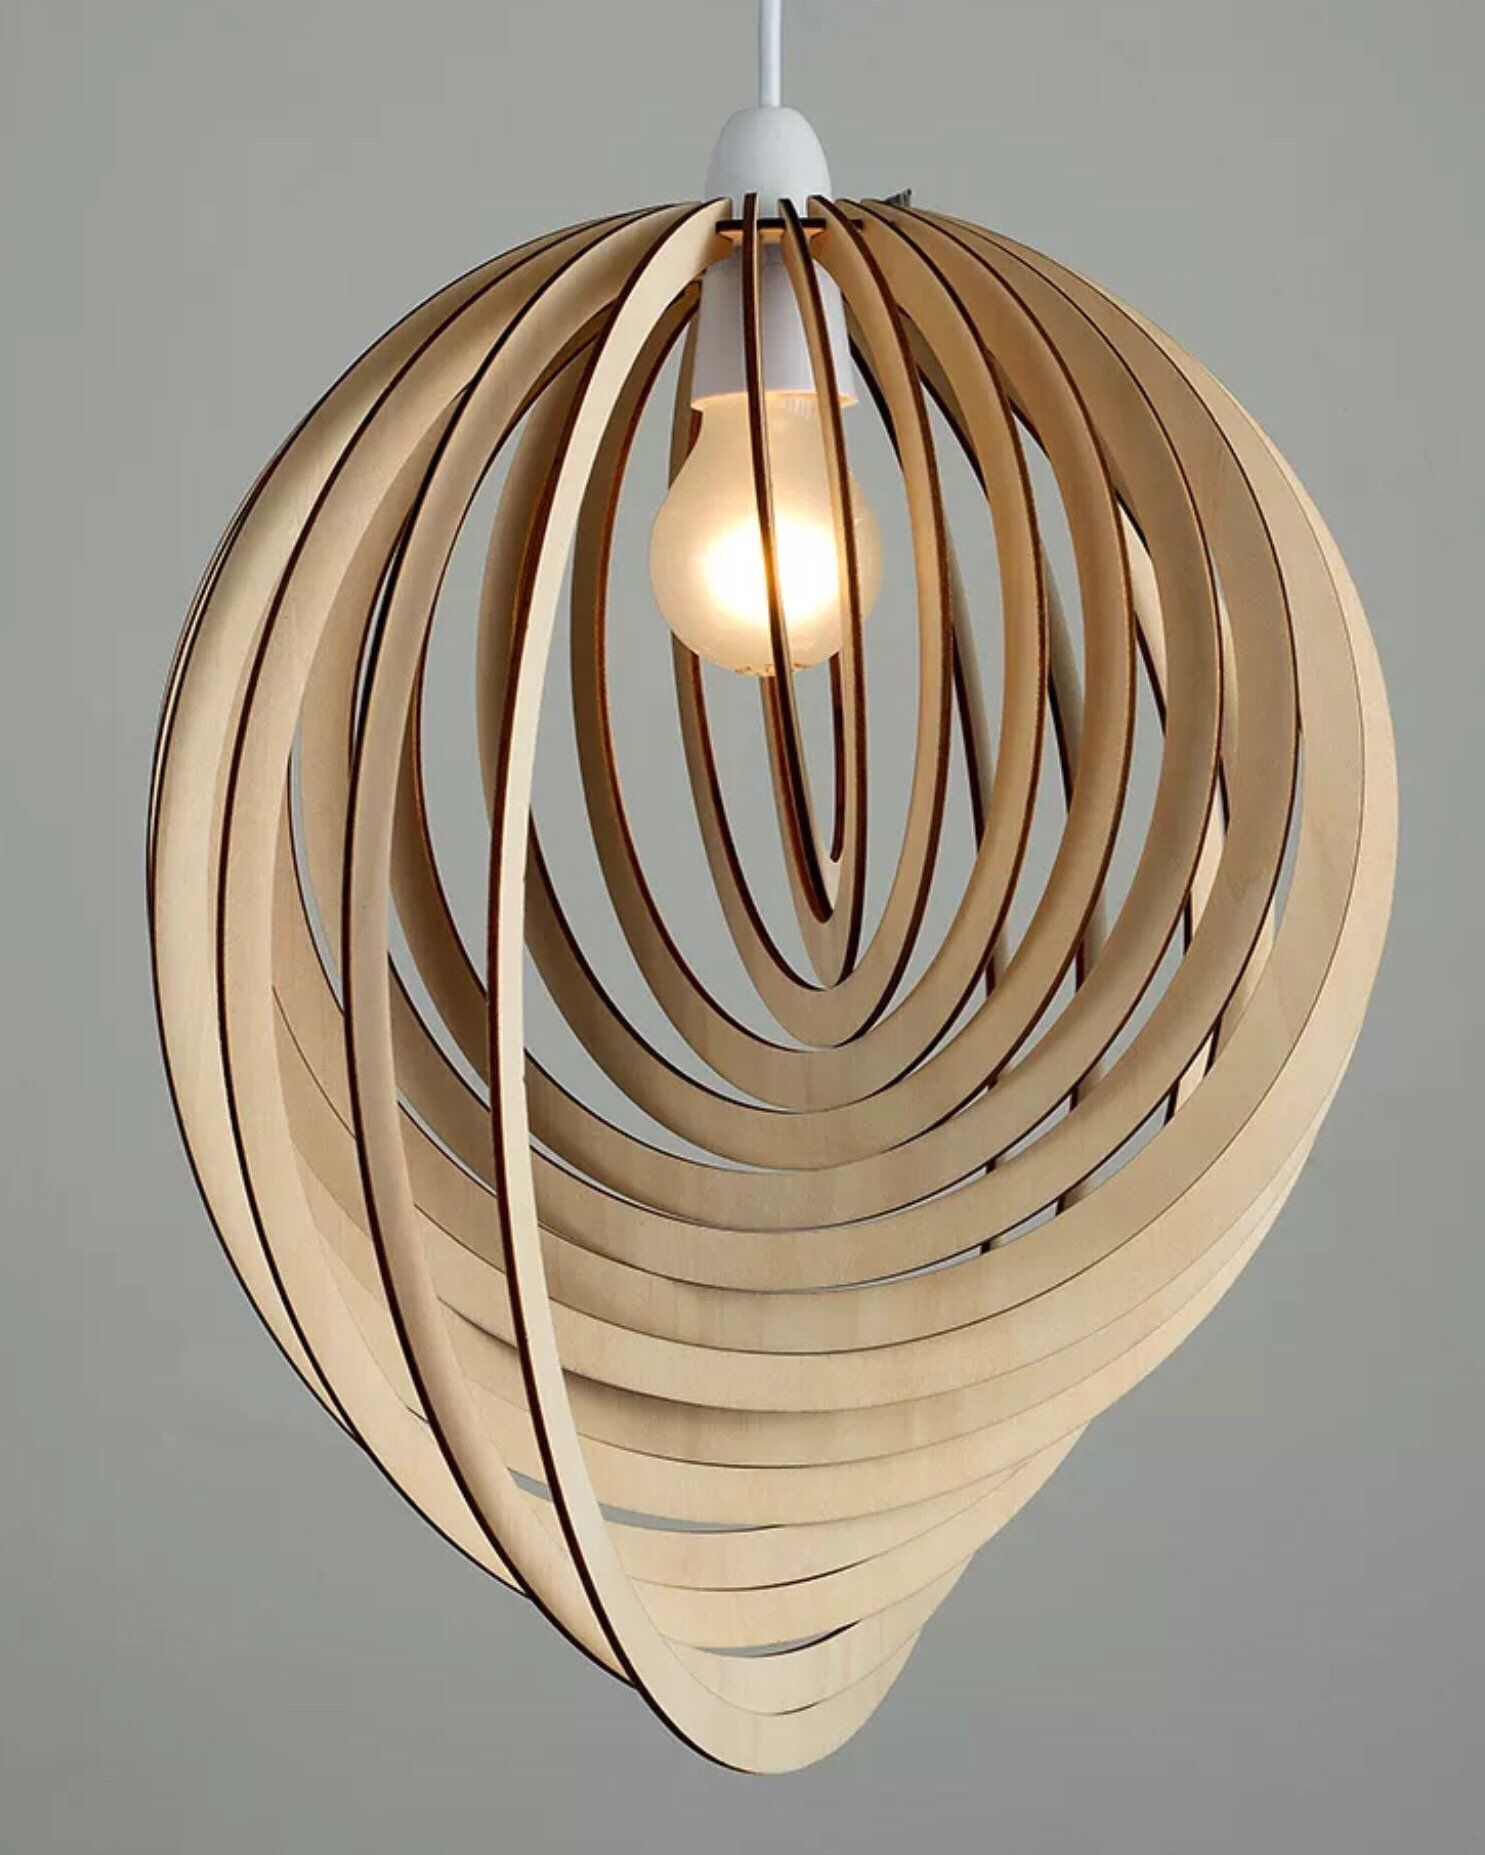 Pendant Light Shade Lamp Shade Ceiling Light Shade Spiral